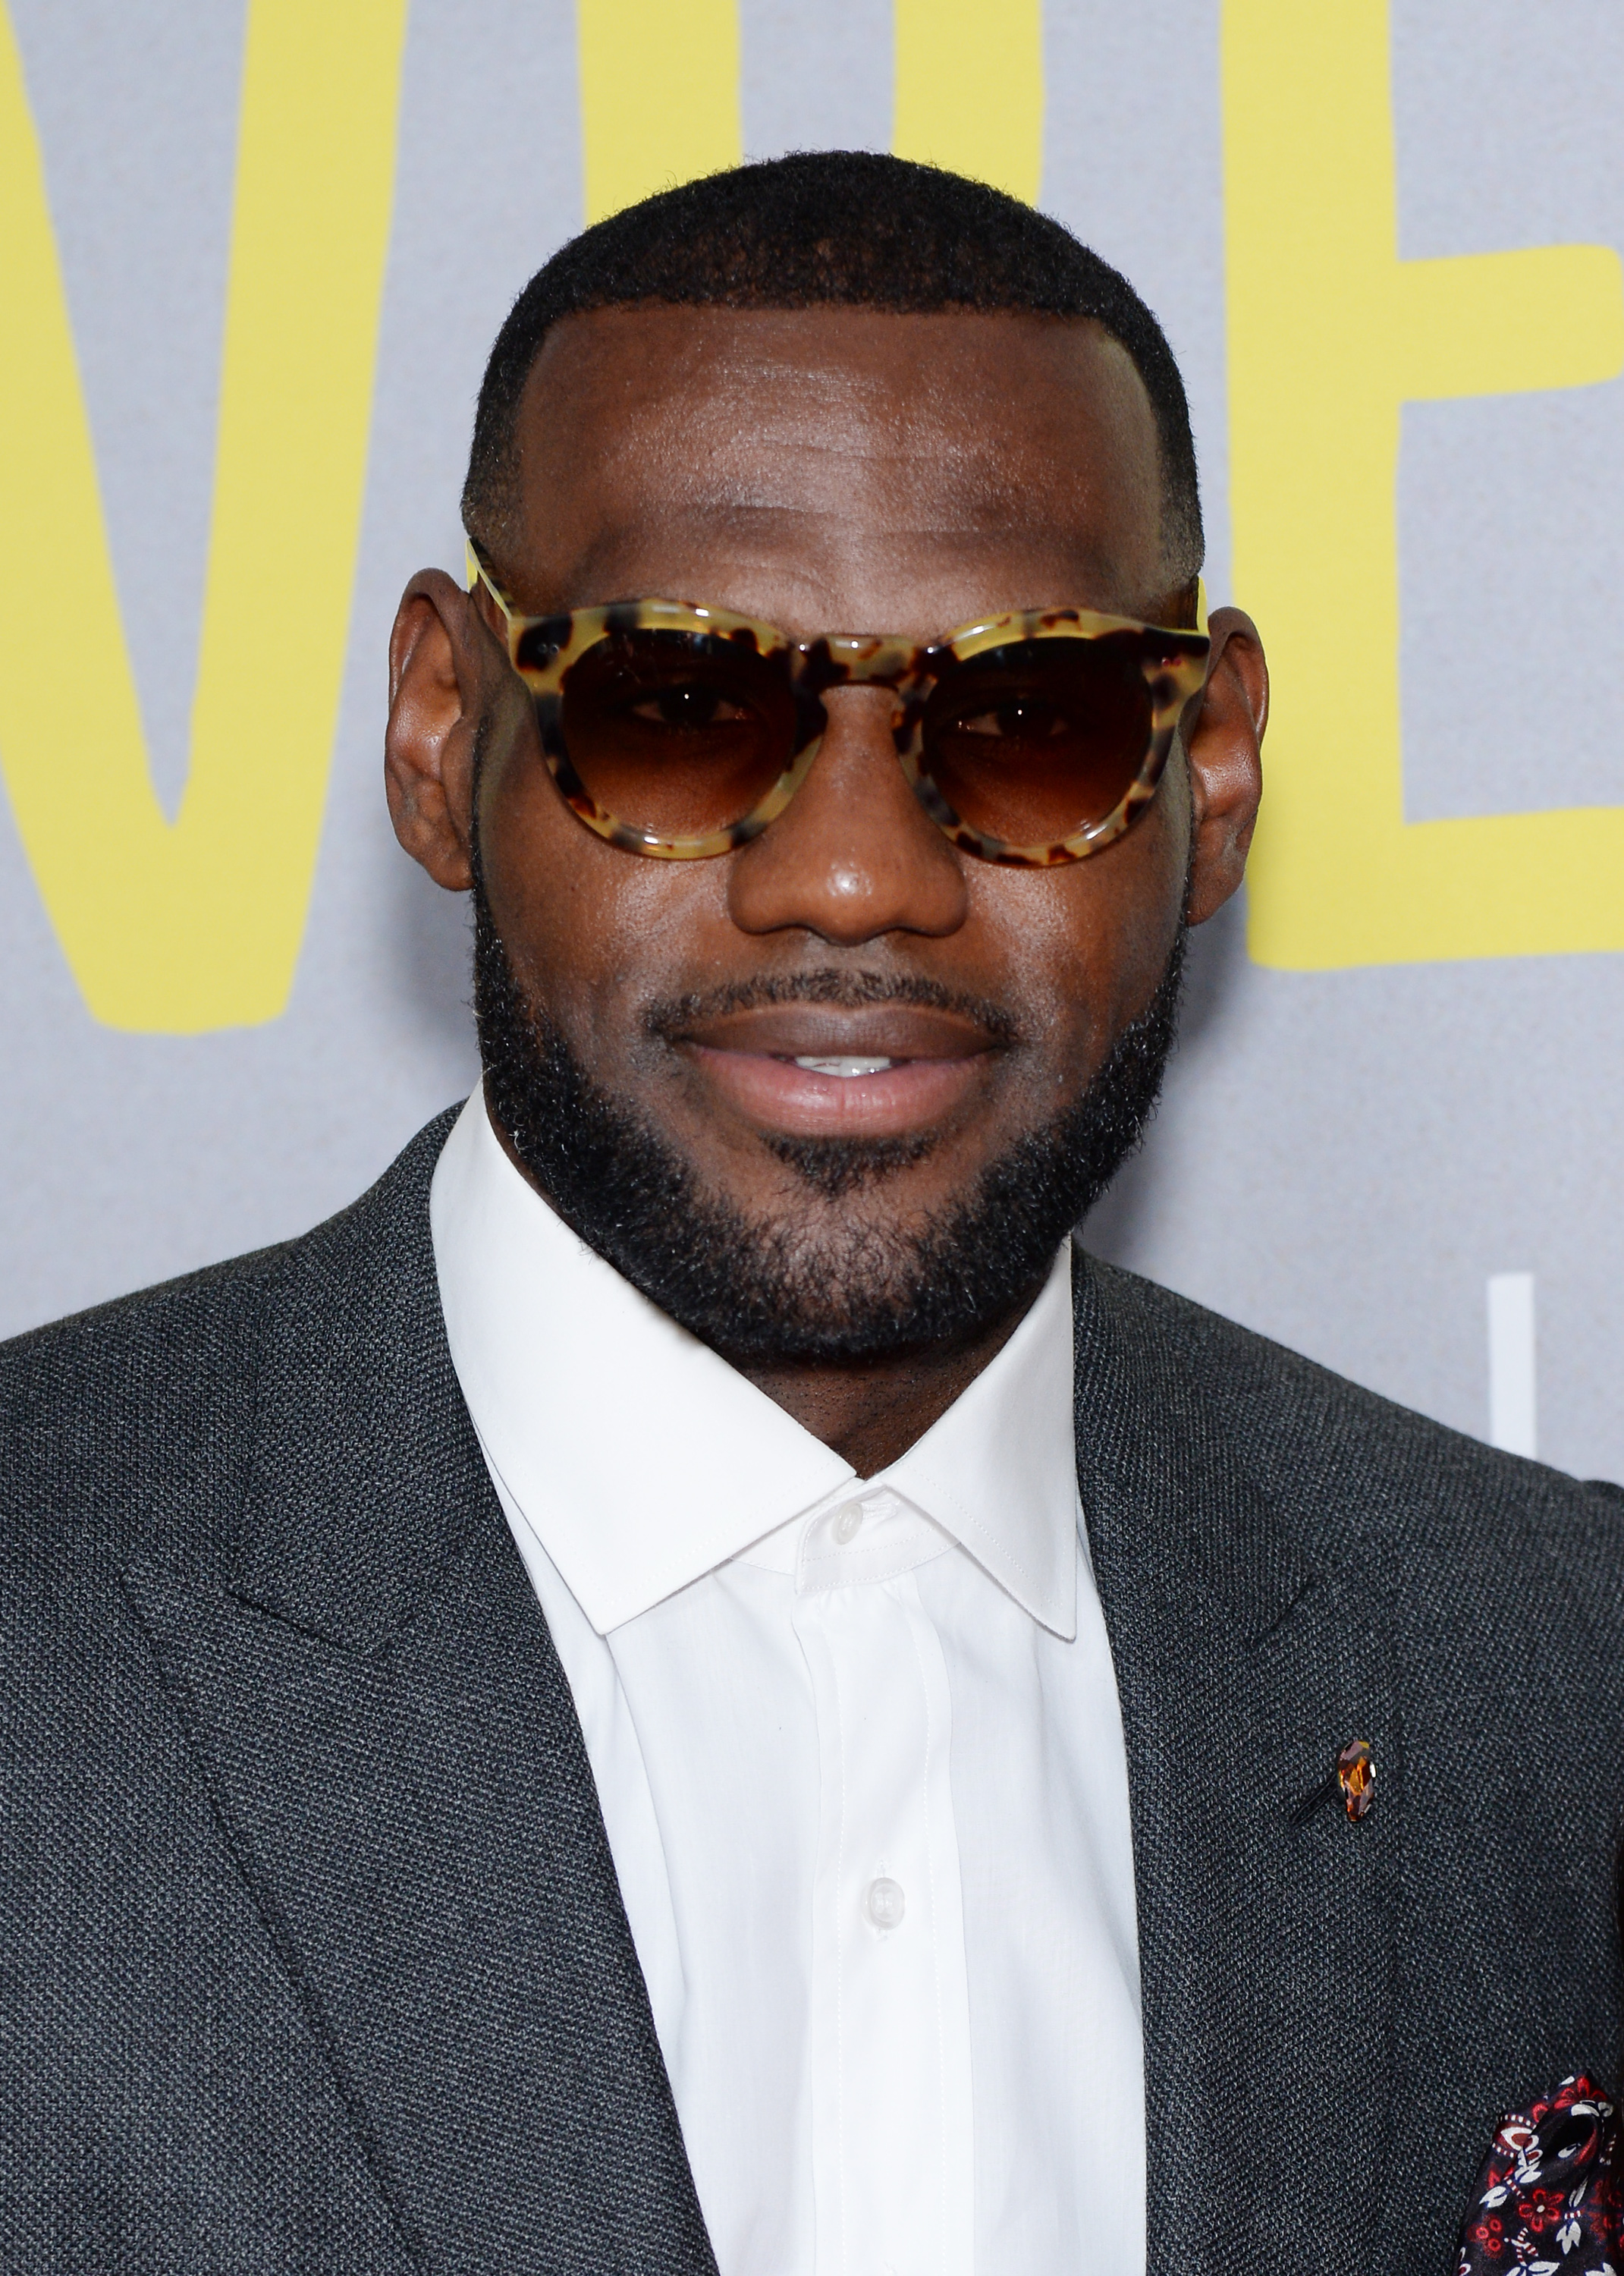 LeBron James attends the 'Trainwreck' premiere on July 14, 2015 in New York City.